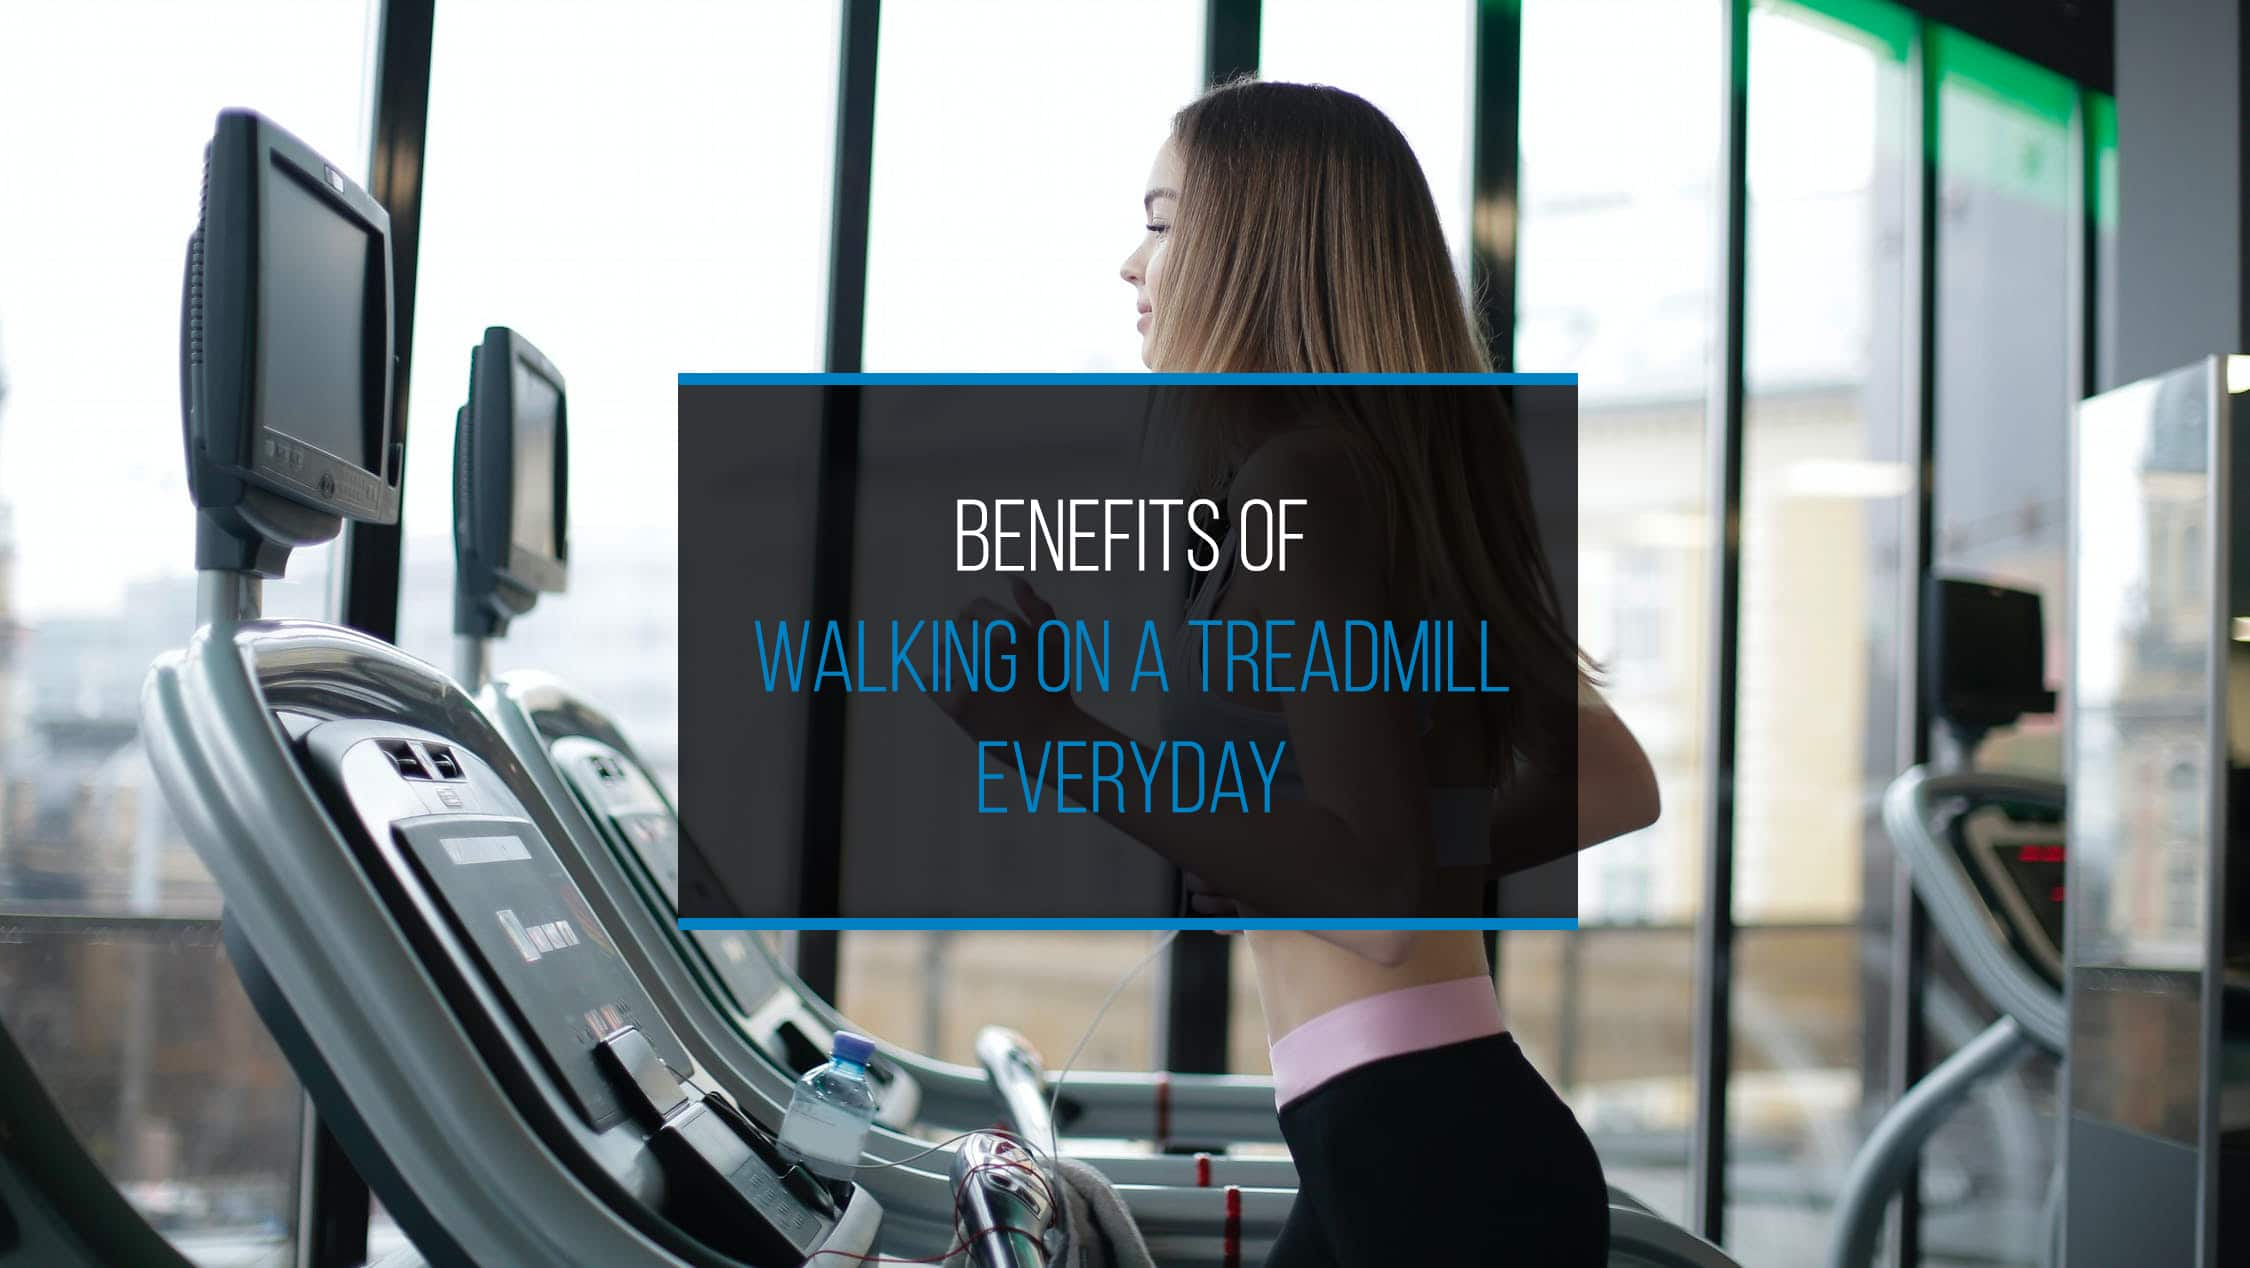 Benefits of walking on a treadmill everyday